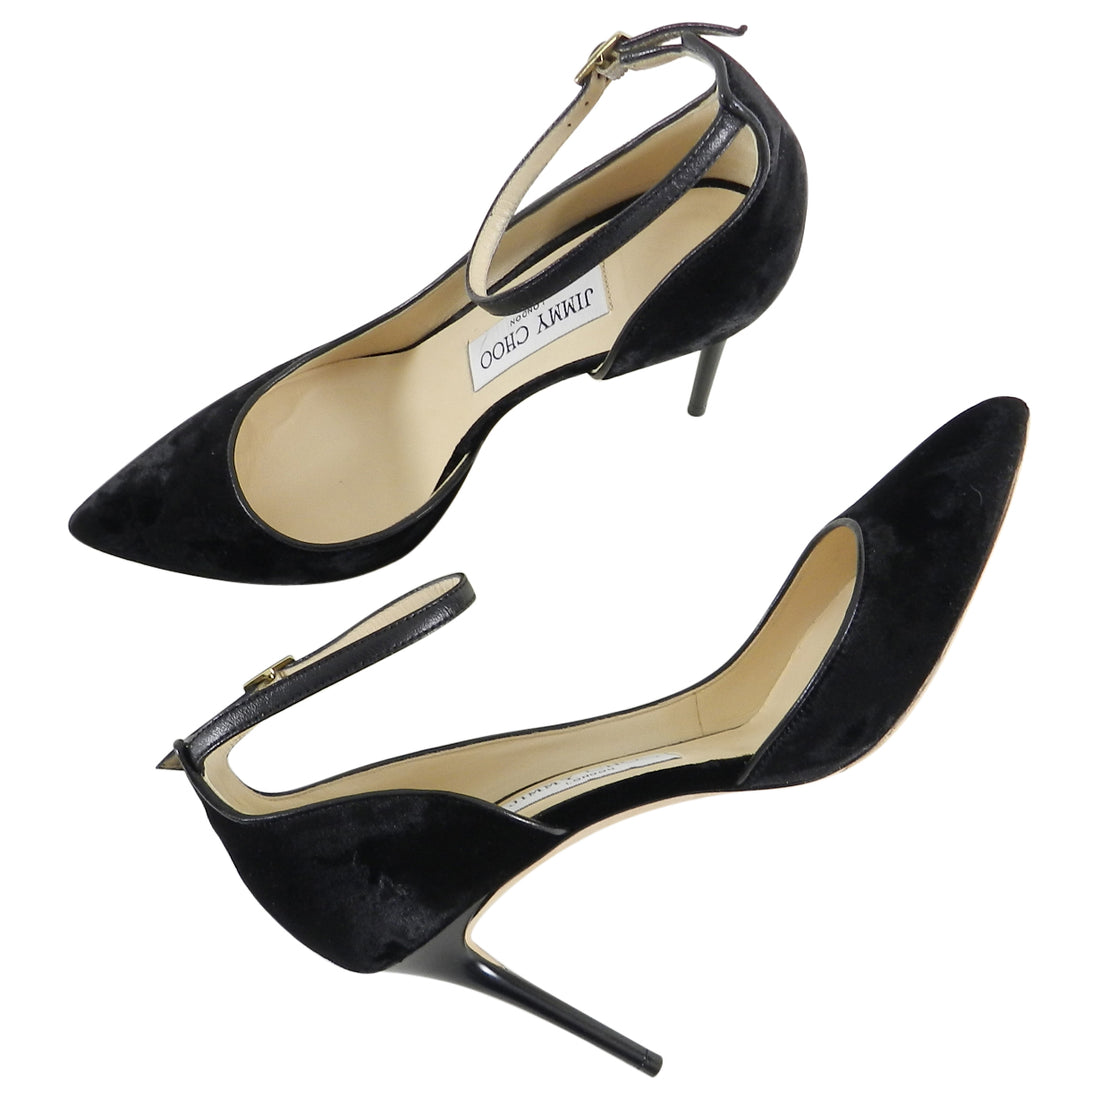 Jimmy Choo Black Velvet Lucy 85mm Heels with Ankle Straps - 36